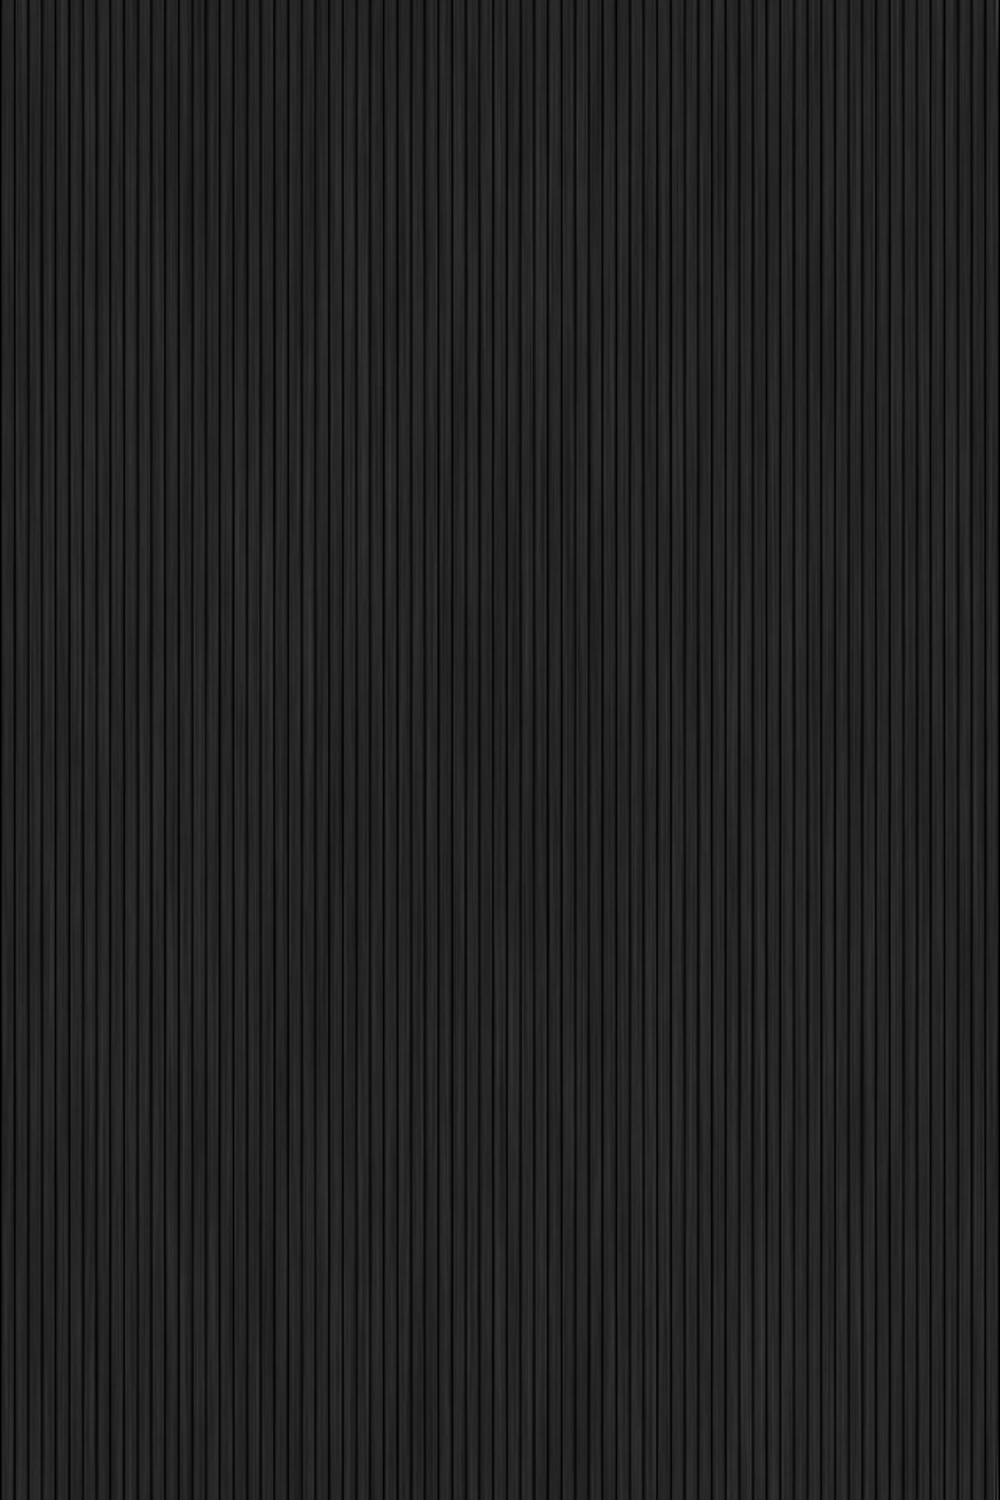 Black Background Iphone Hd Free Download In 2020 Solid Black Wallpaper Black Background Wallpaper Pure Black Wallpaper